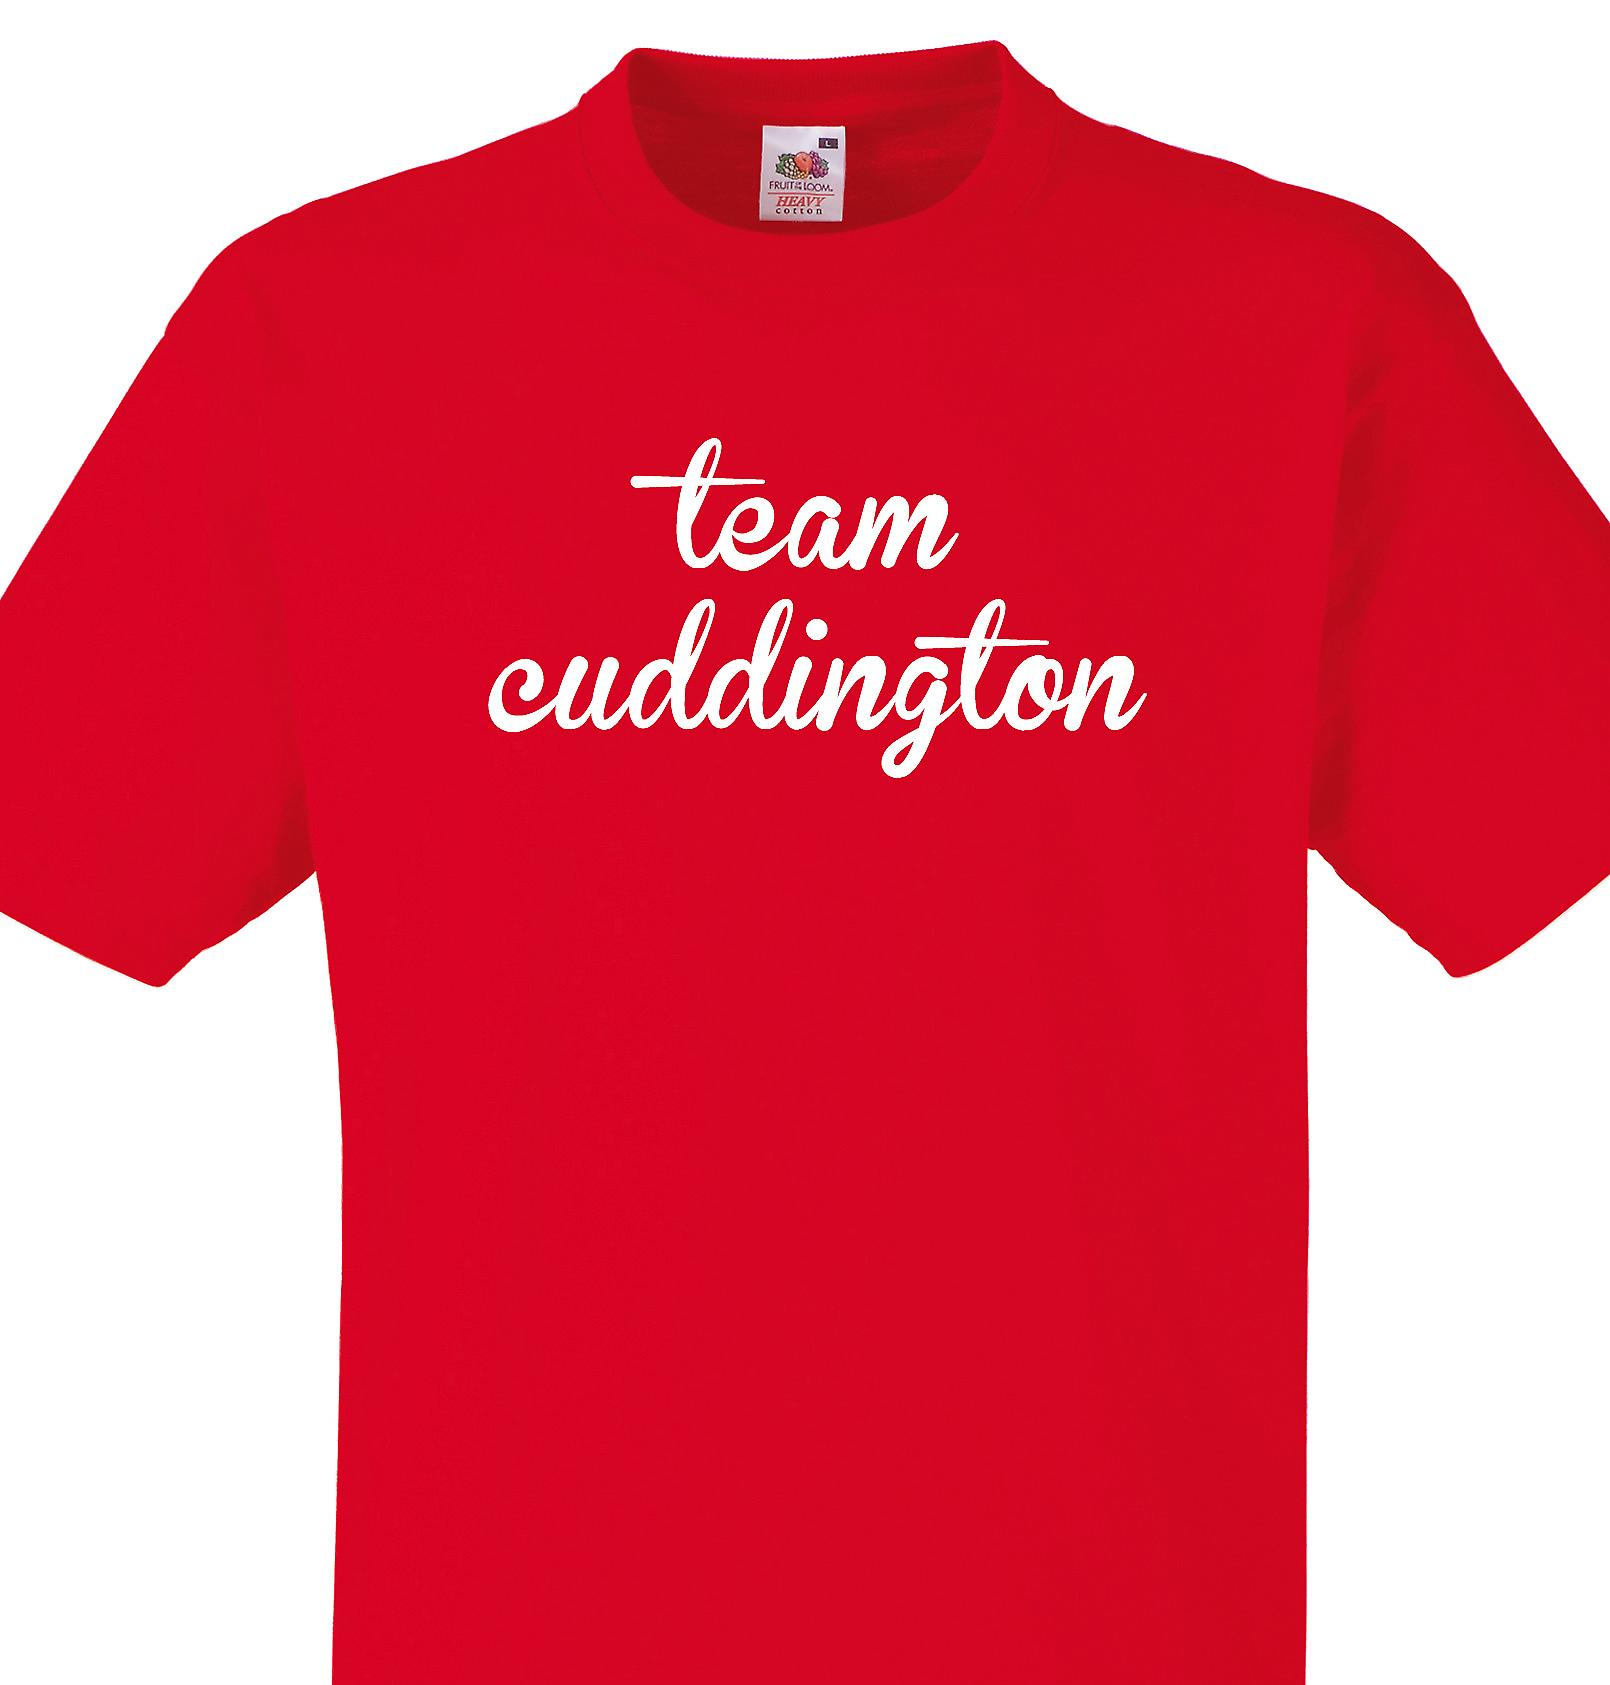 Team Cuddington Red T shirt